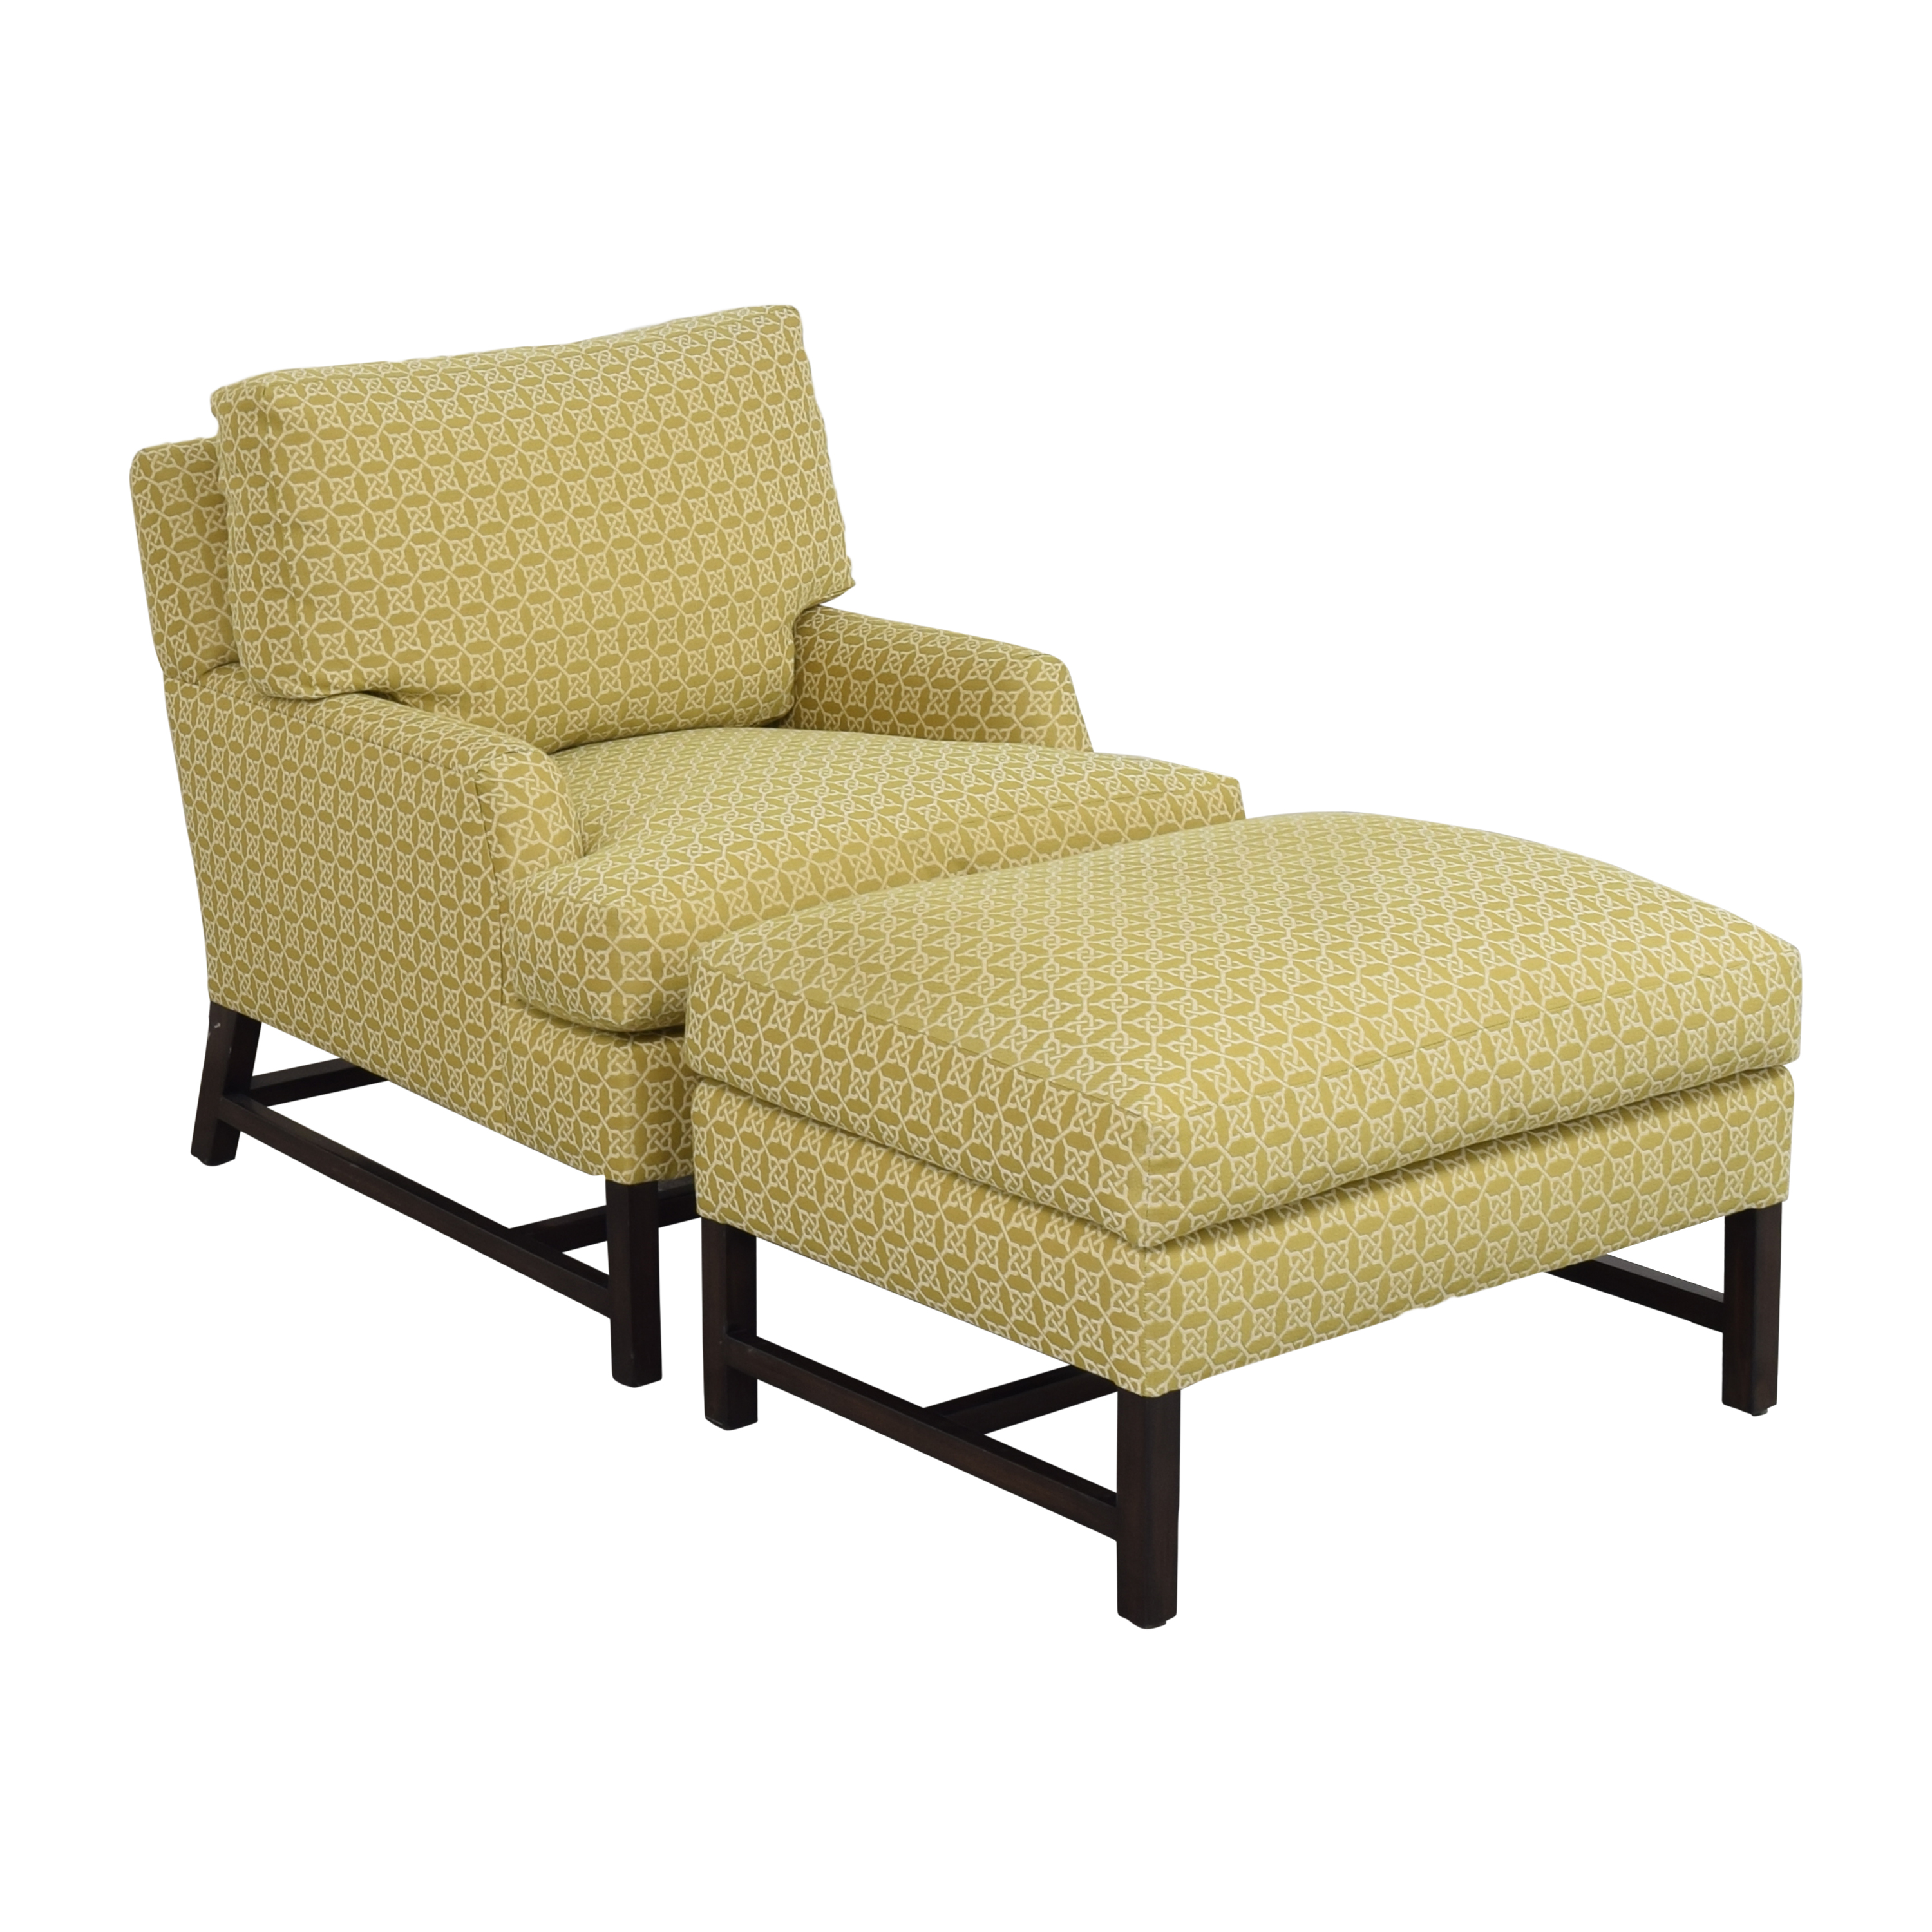 A Rudin A Rudin No 681 Chair and Ottoman on sale